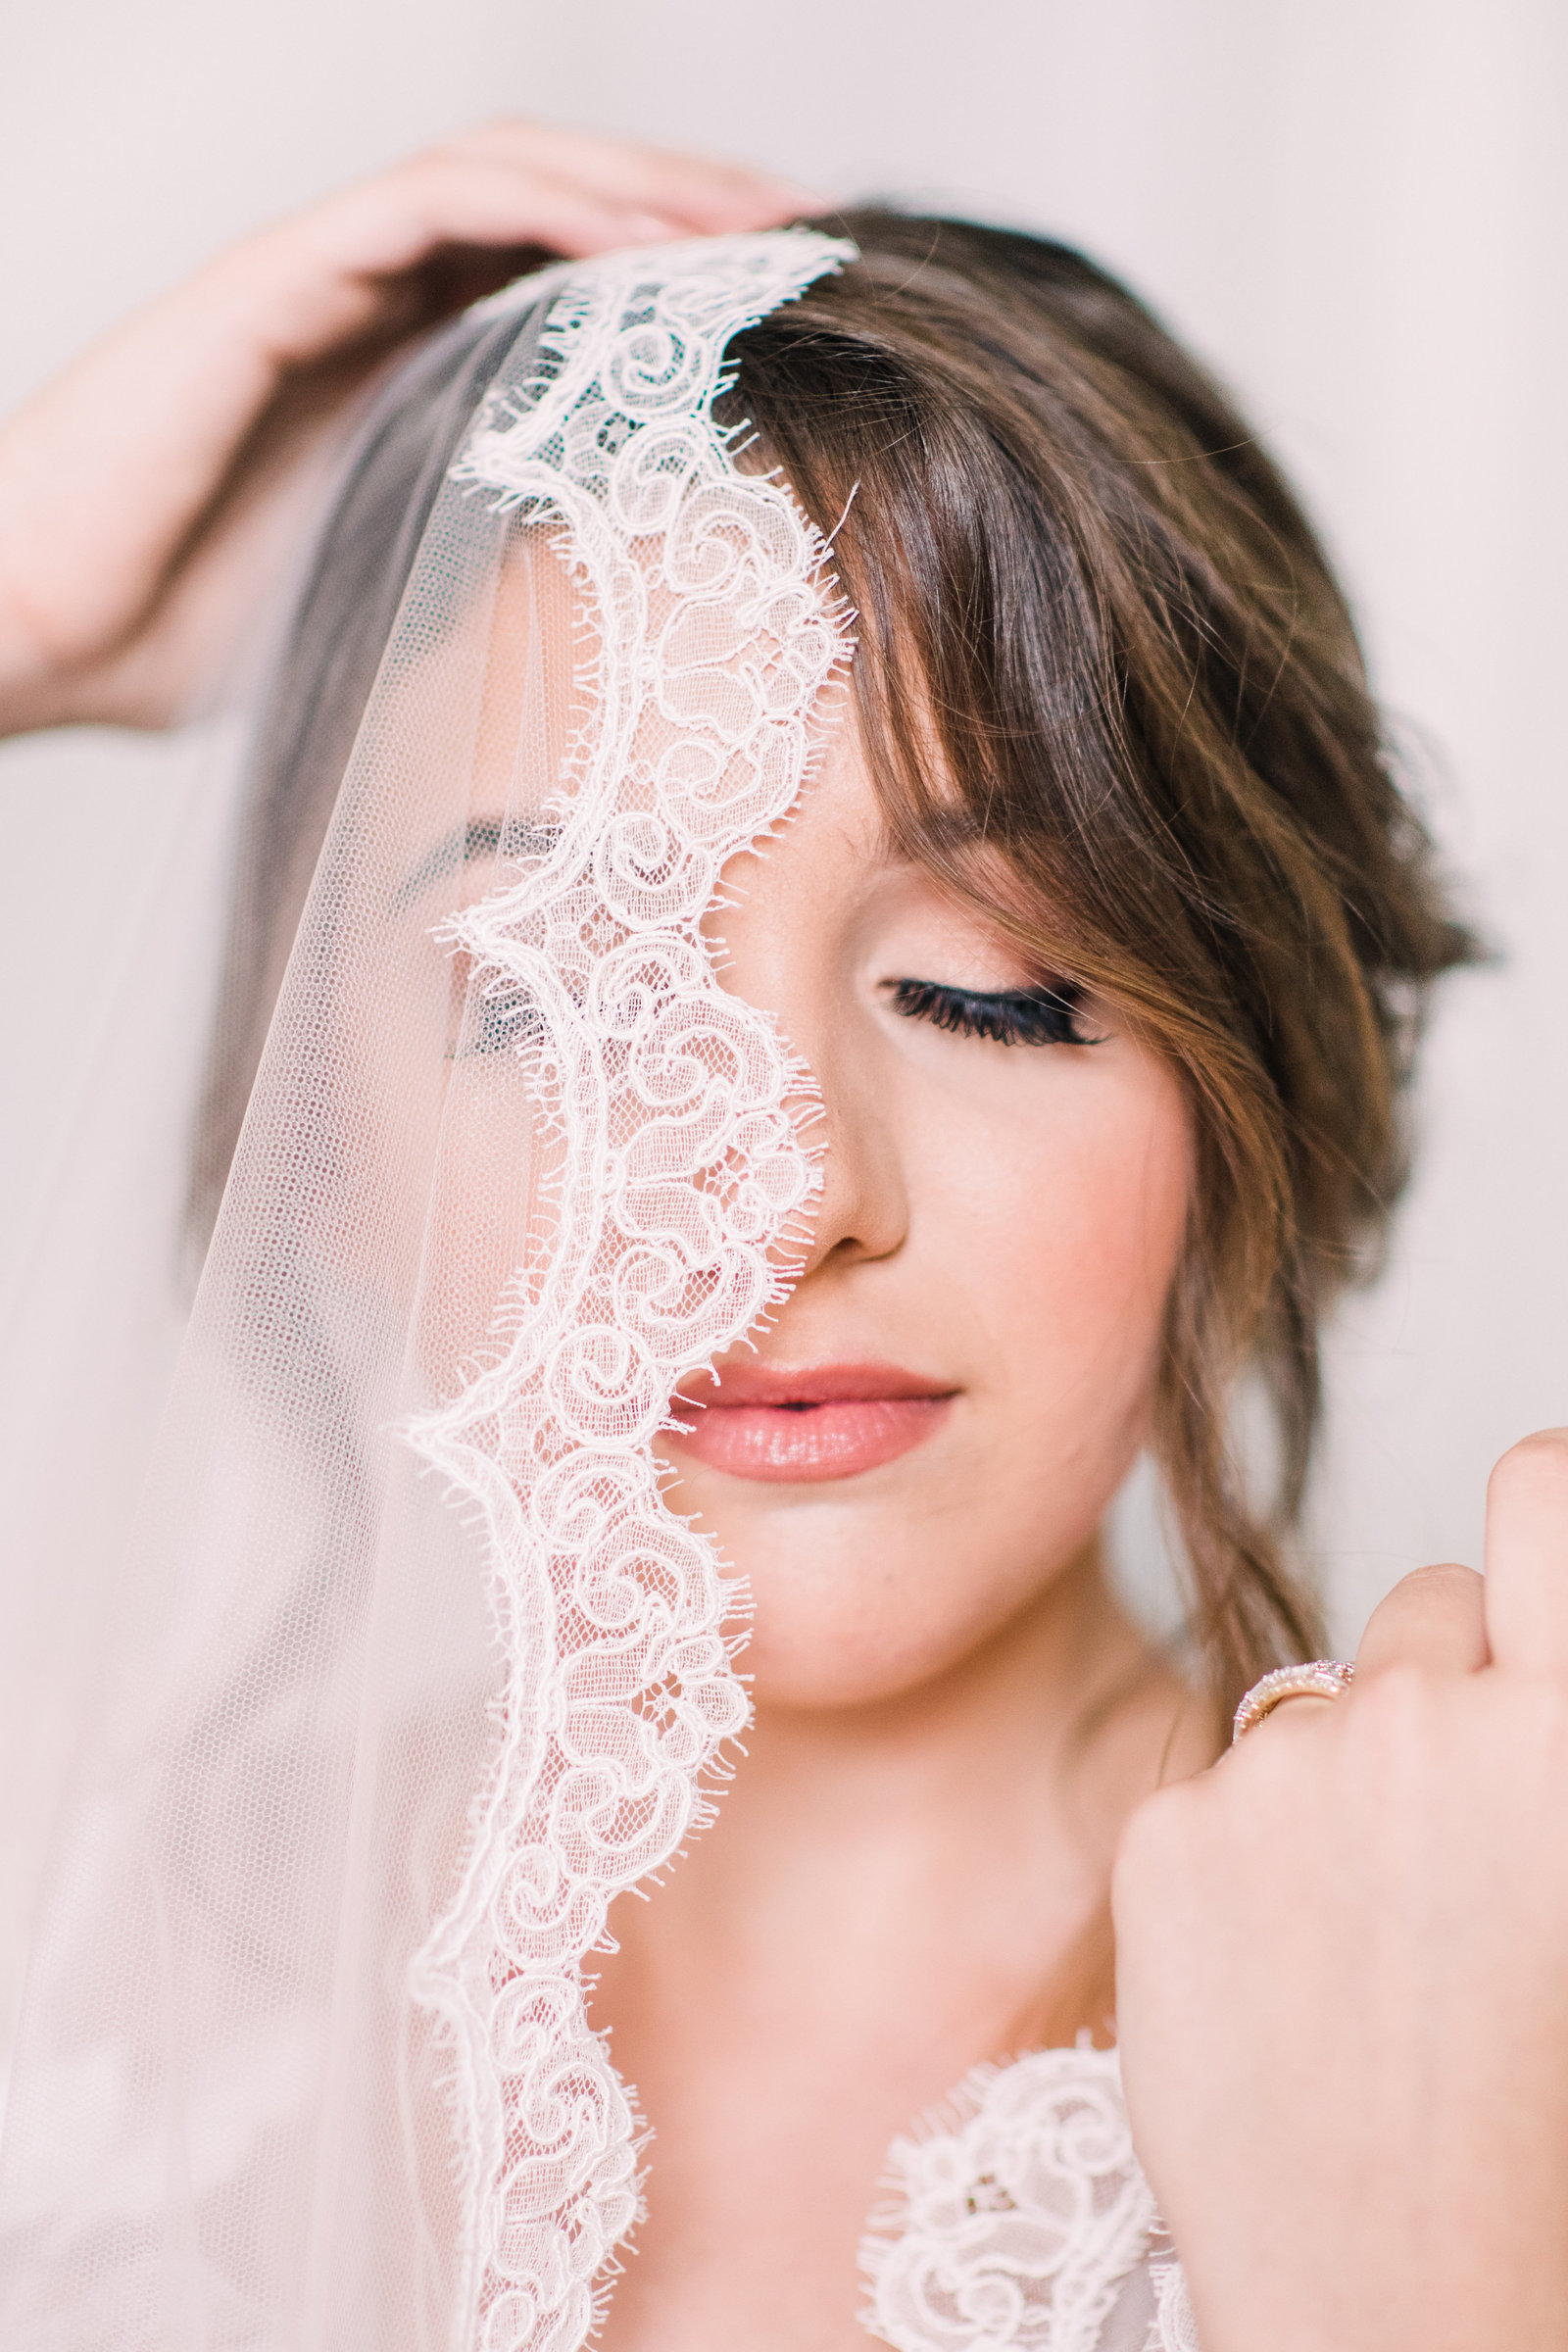 fine art portrait of bride with lace veil over her face and eyes closed